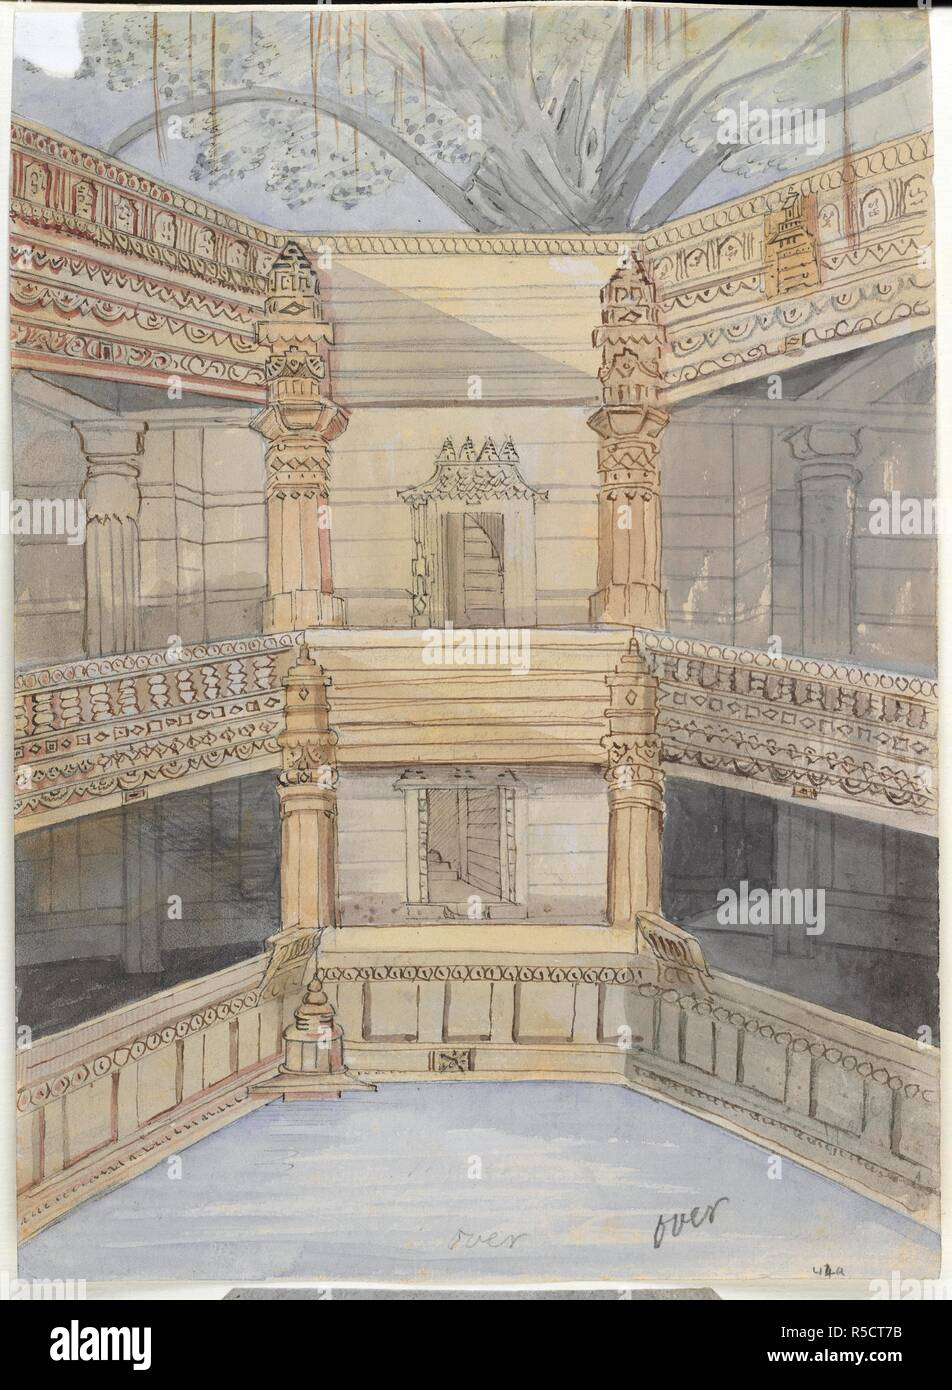 Ancient well. Album of 414 drawings and scraps, and 9 prints of. 1822 - 1856. Ancient well at Udalij Ahmedabad.  Image taken from Album of 414 drawings and scraps, and 9 prints of landscapes, architecture, natural history, and people, including Indian costumes and military uniforms. Made in W. India and the Deccan, 1822-56, and during a journey overland to England, 1840.  Originally published/produced in 1822 - 1856. . Source: WD 1478, 44a. Author: Bellasis, John Brownrigg. - Stock Image